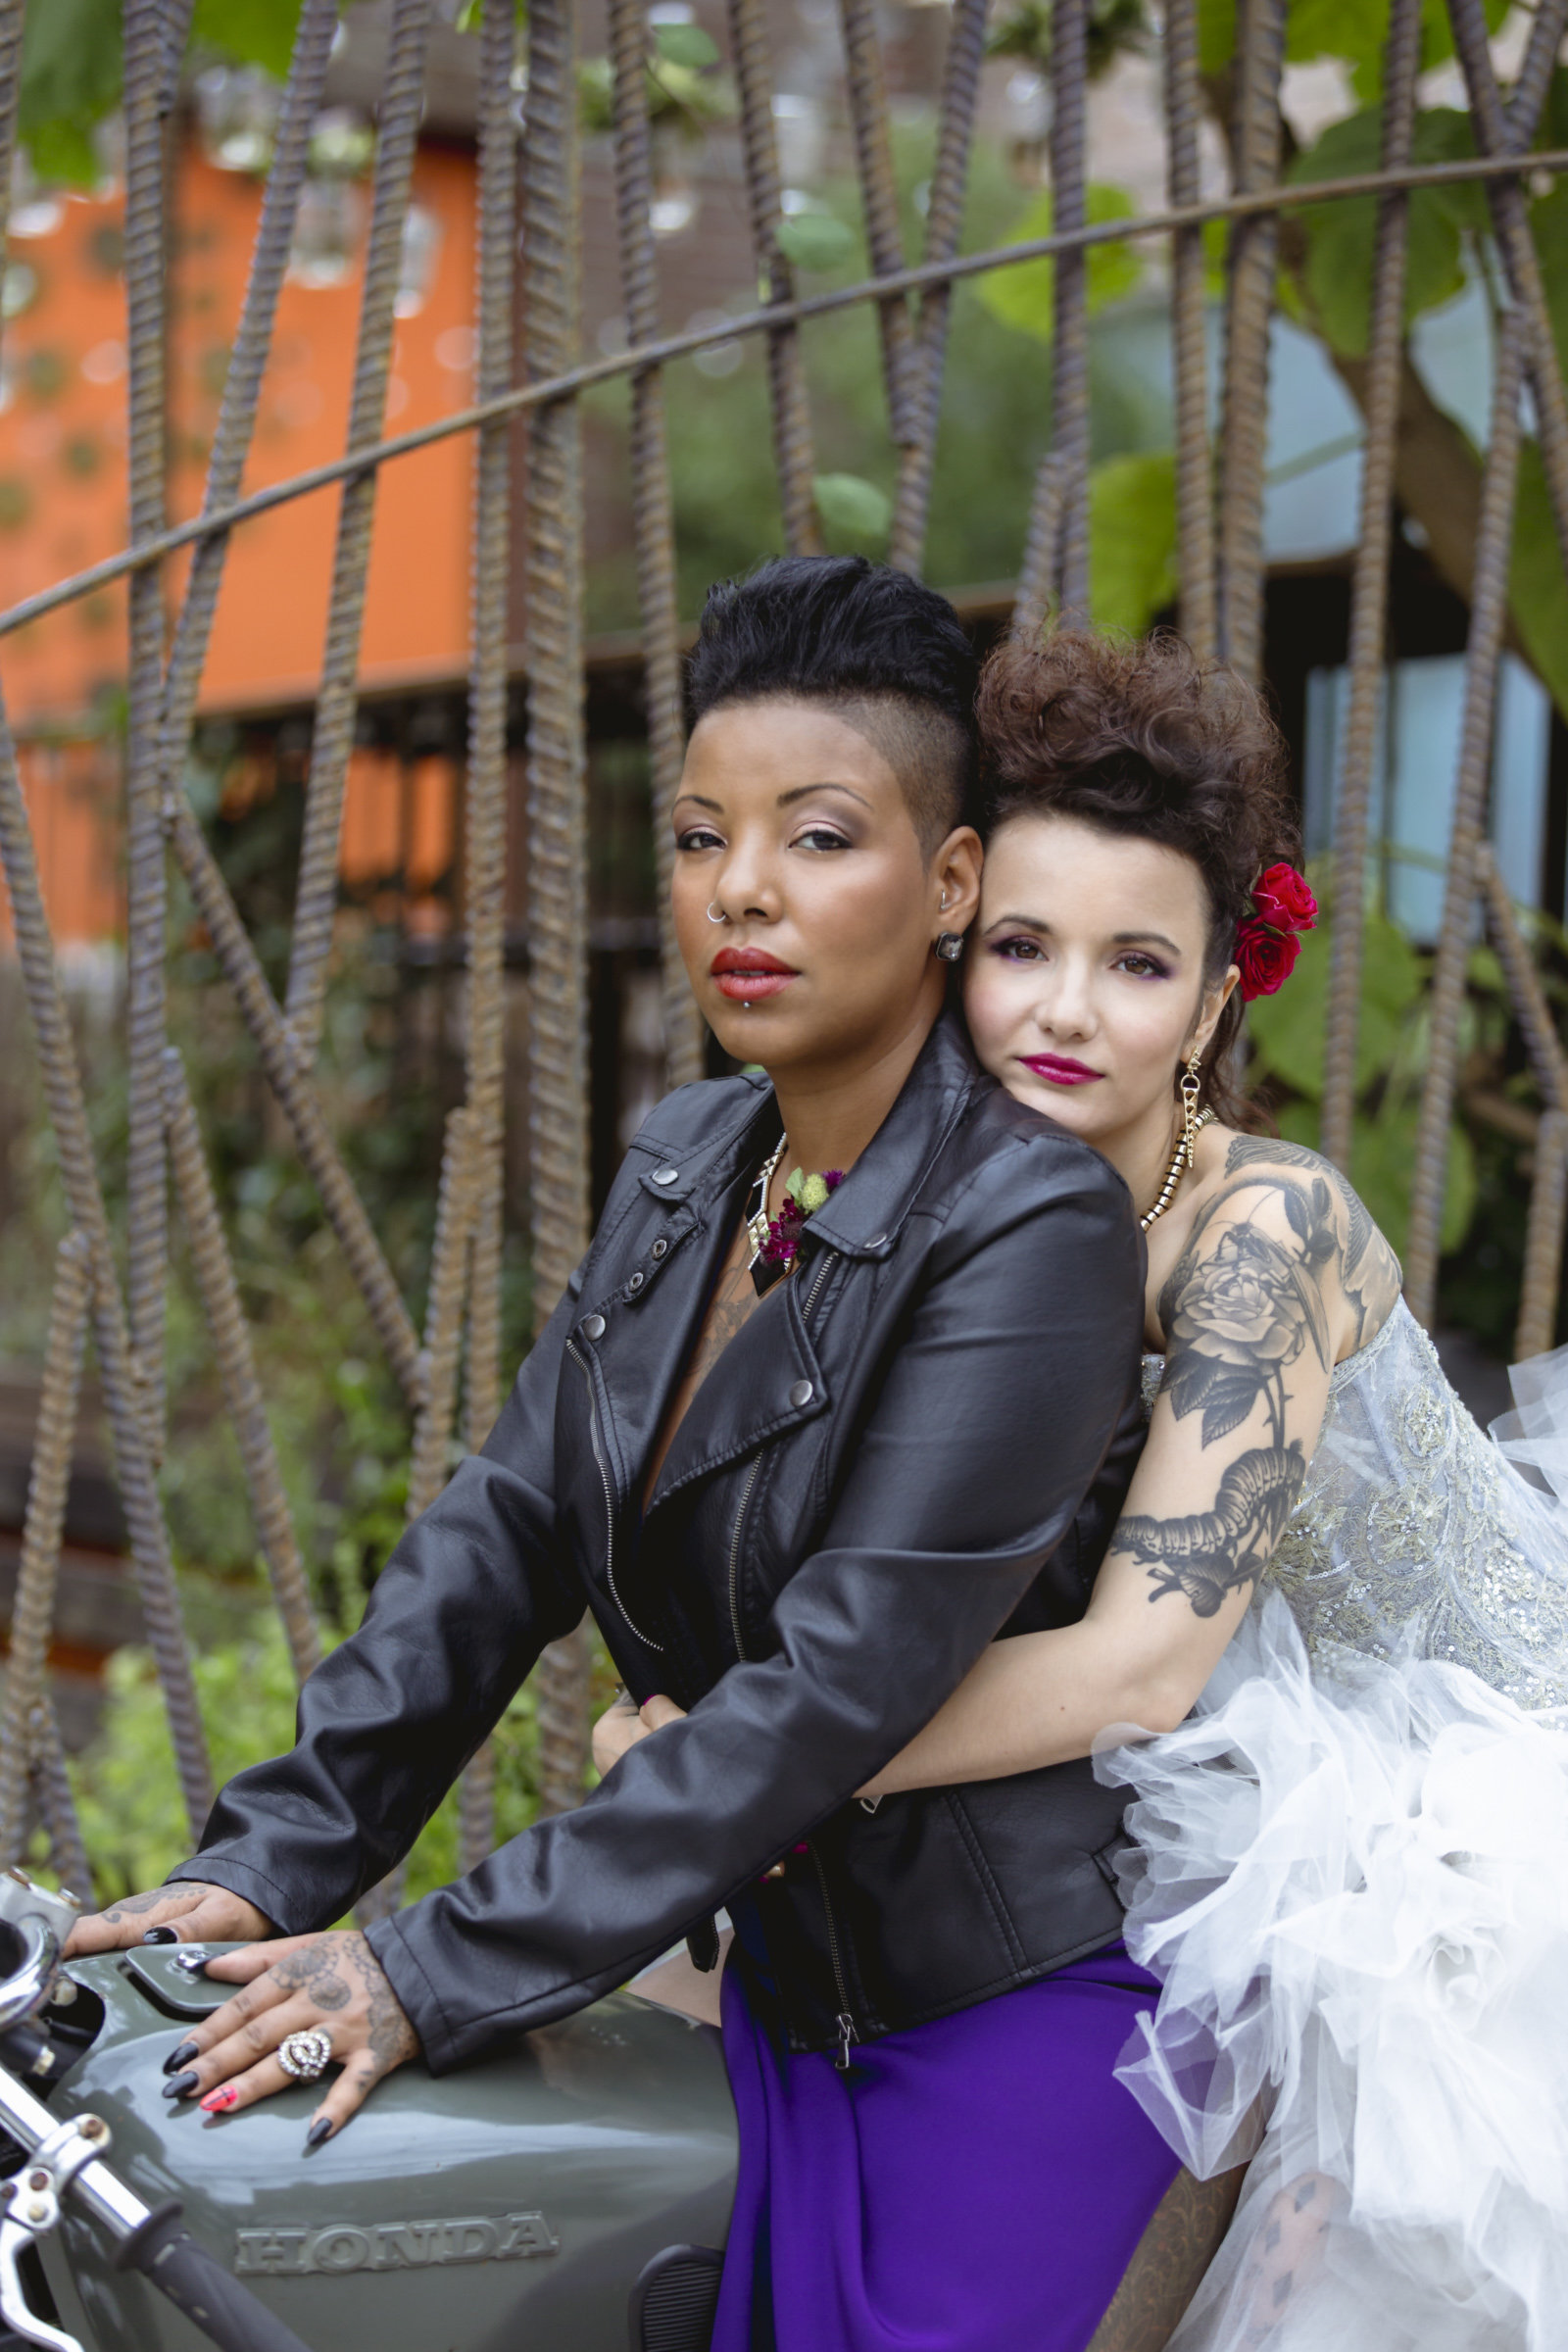 Two brides on a motorcycle